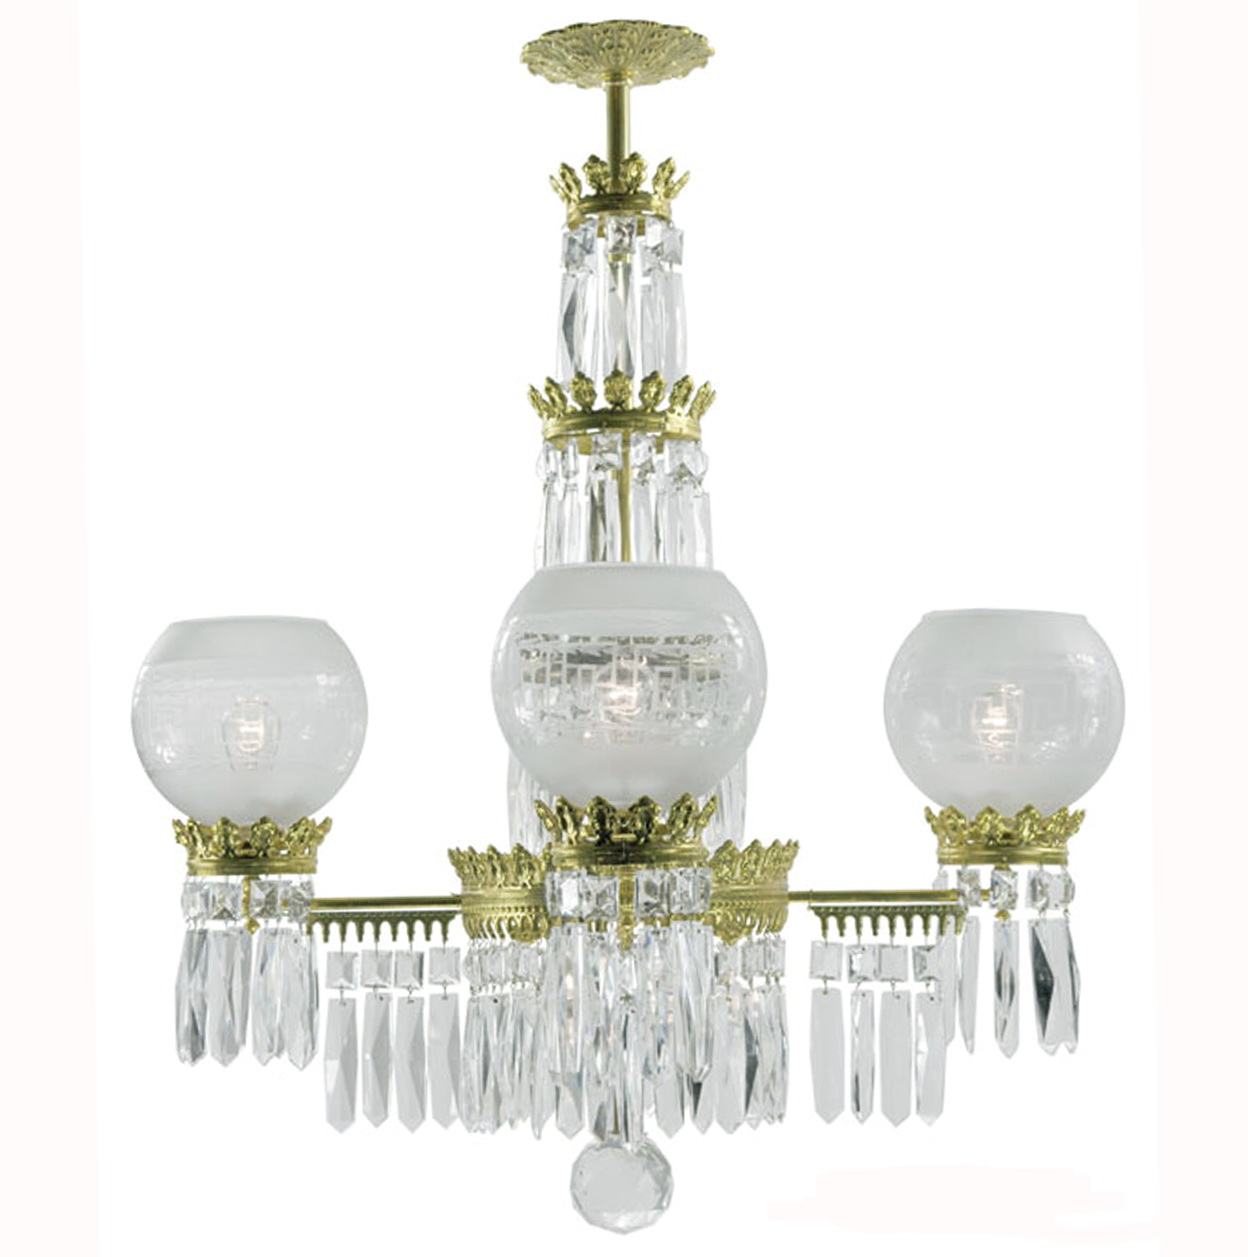 Antique Crystal Chandeliers For Sale Home Design Ideas